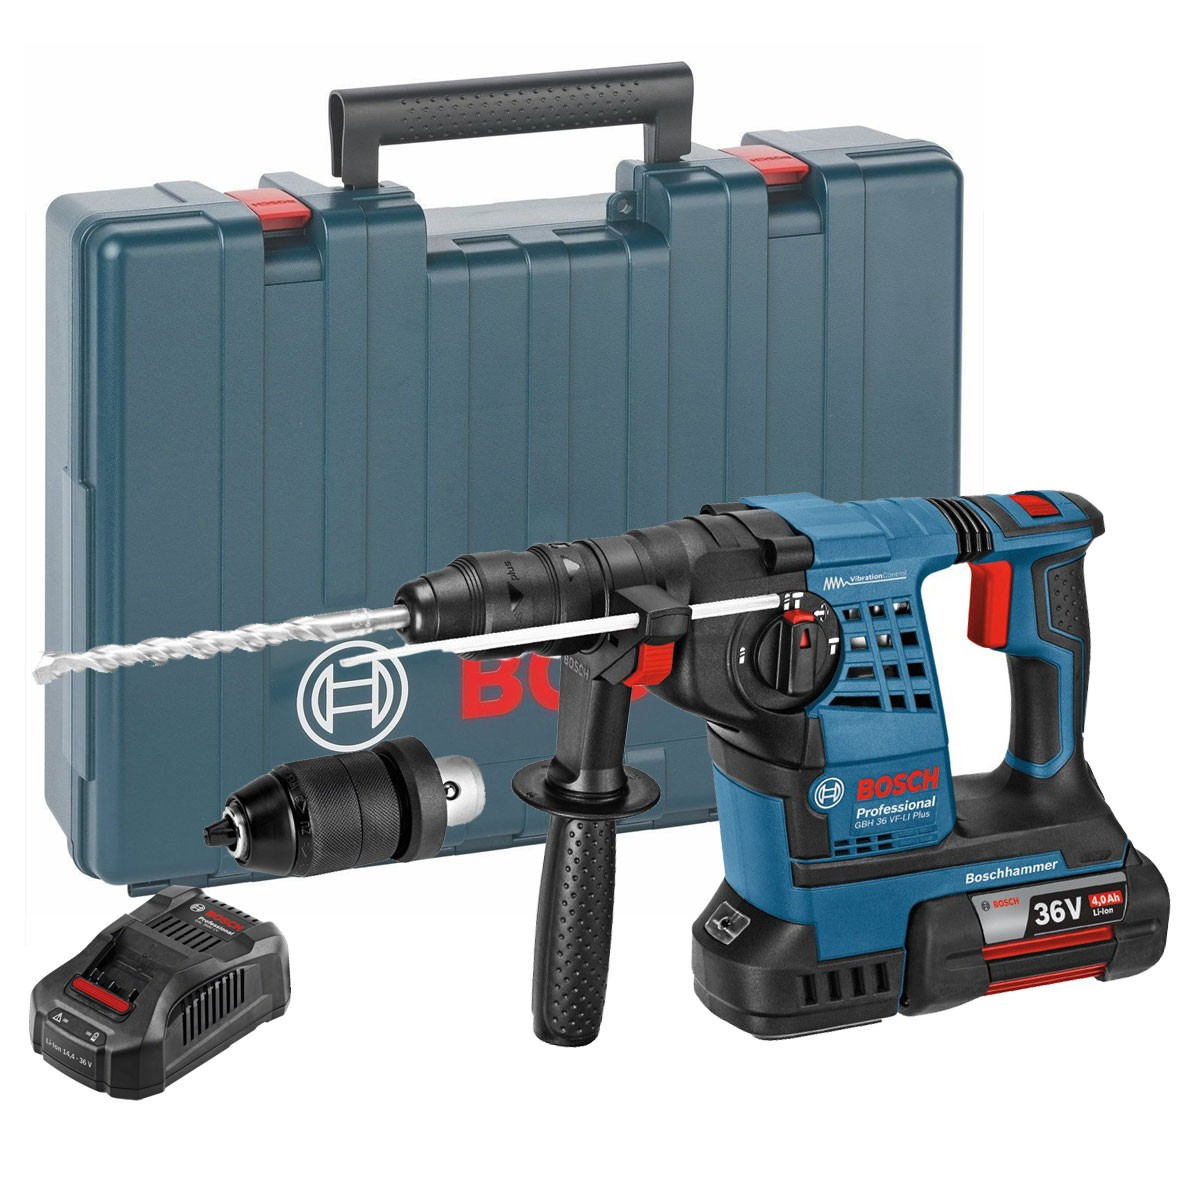 bosch gbh 36 vf li plus 36v sds rotary hammer inc 1x 4ah batt powertool world. Black Bedroom Furniture Sets. Home Design Ideas